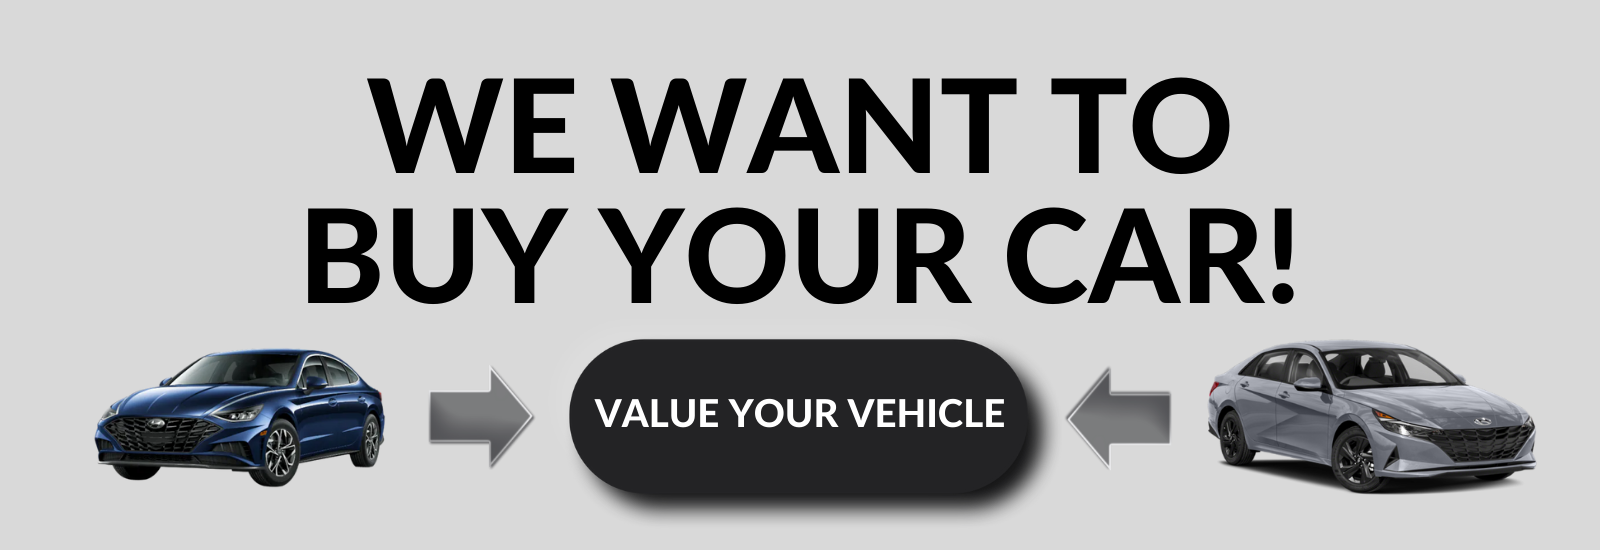 WE WANT TO BUY YOUR CAR! Westside Hyundai